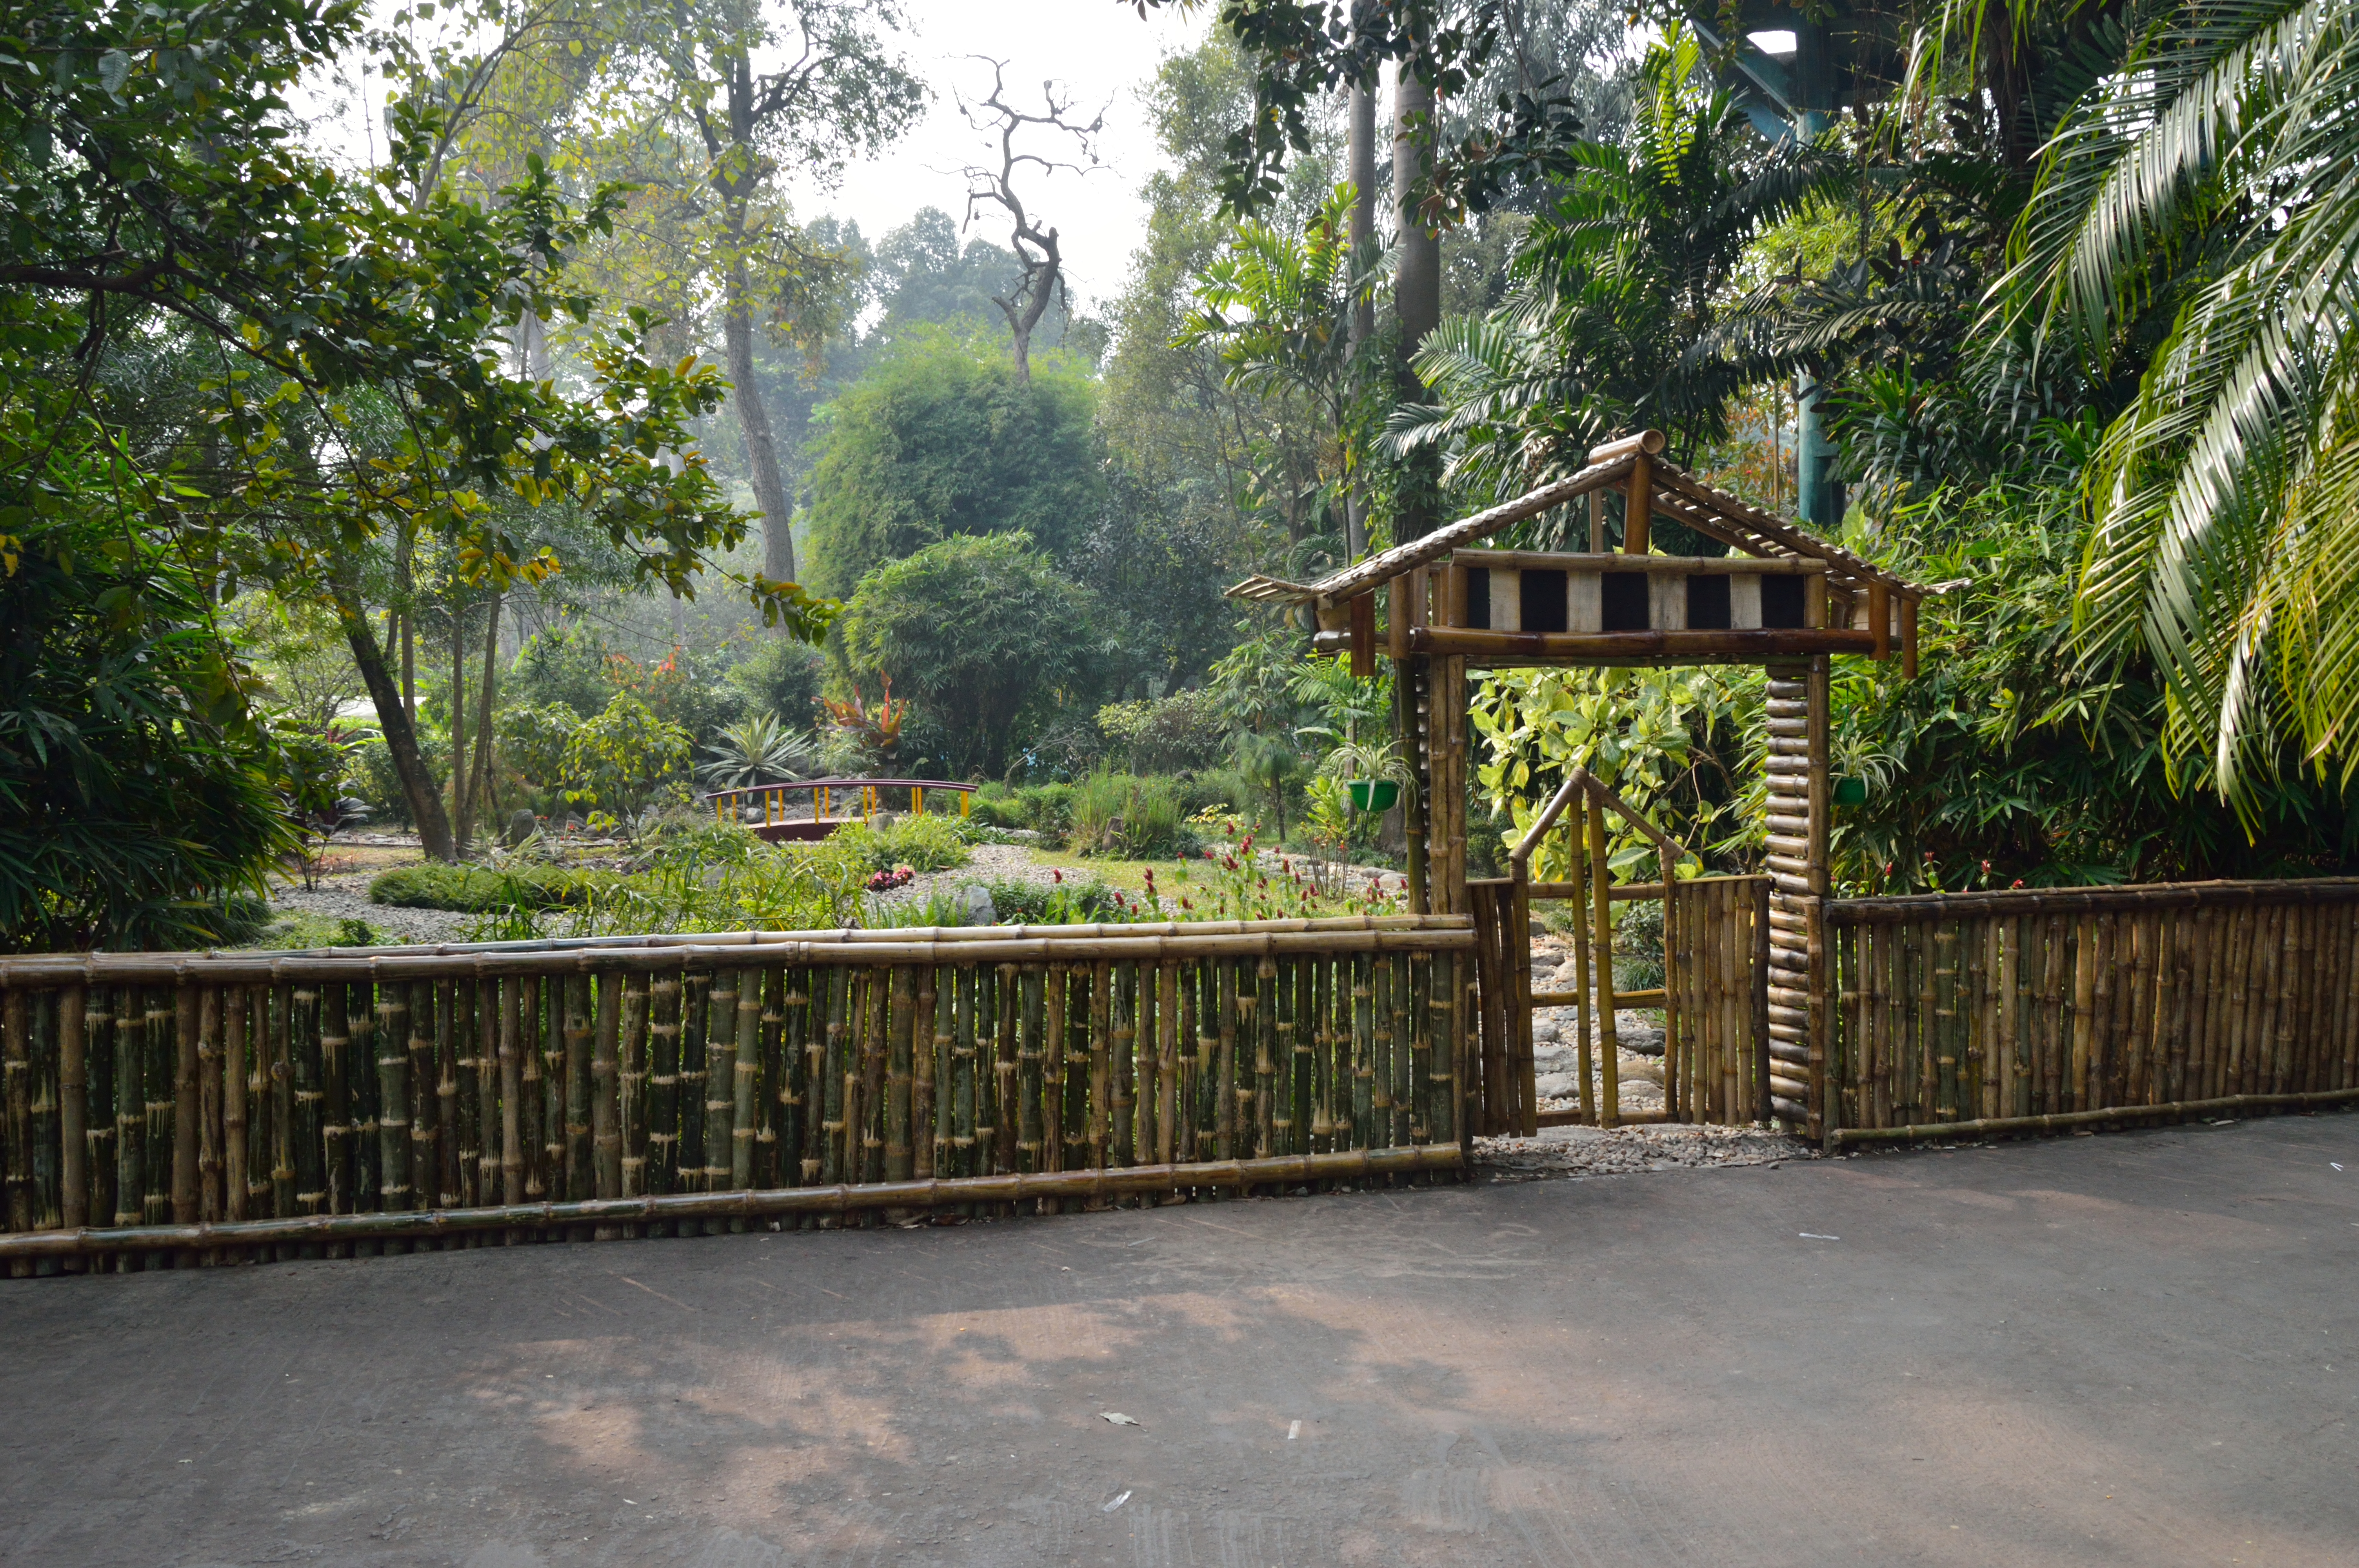 File Bamboo Fence With Gate Agri Horticultural Society Of India Alipore Kolkata 2017 01 05 2369 Jpg